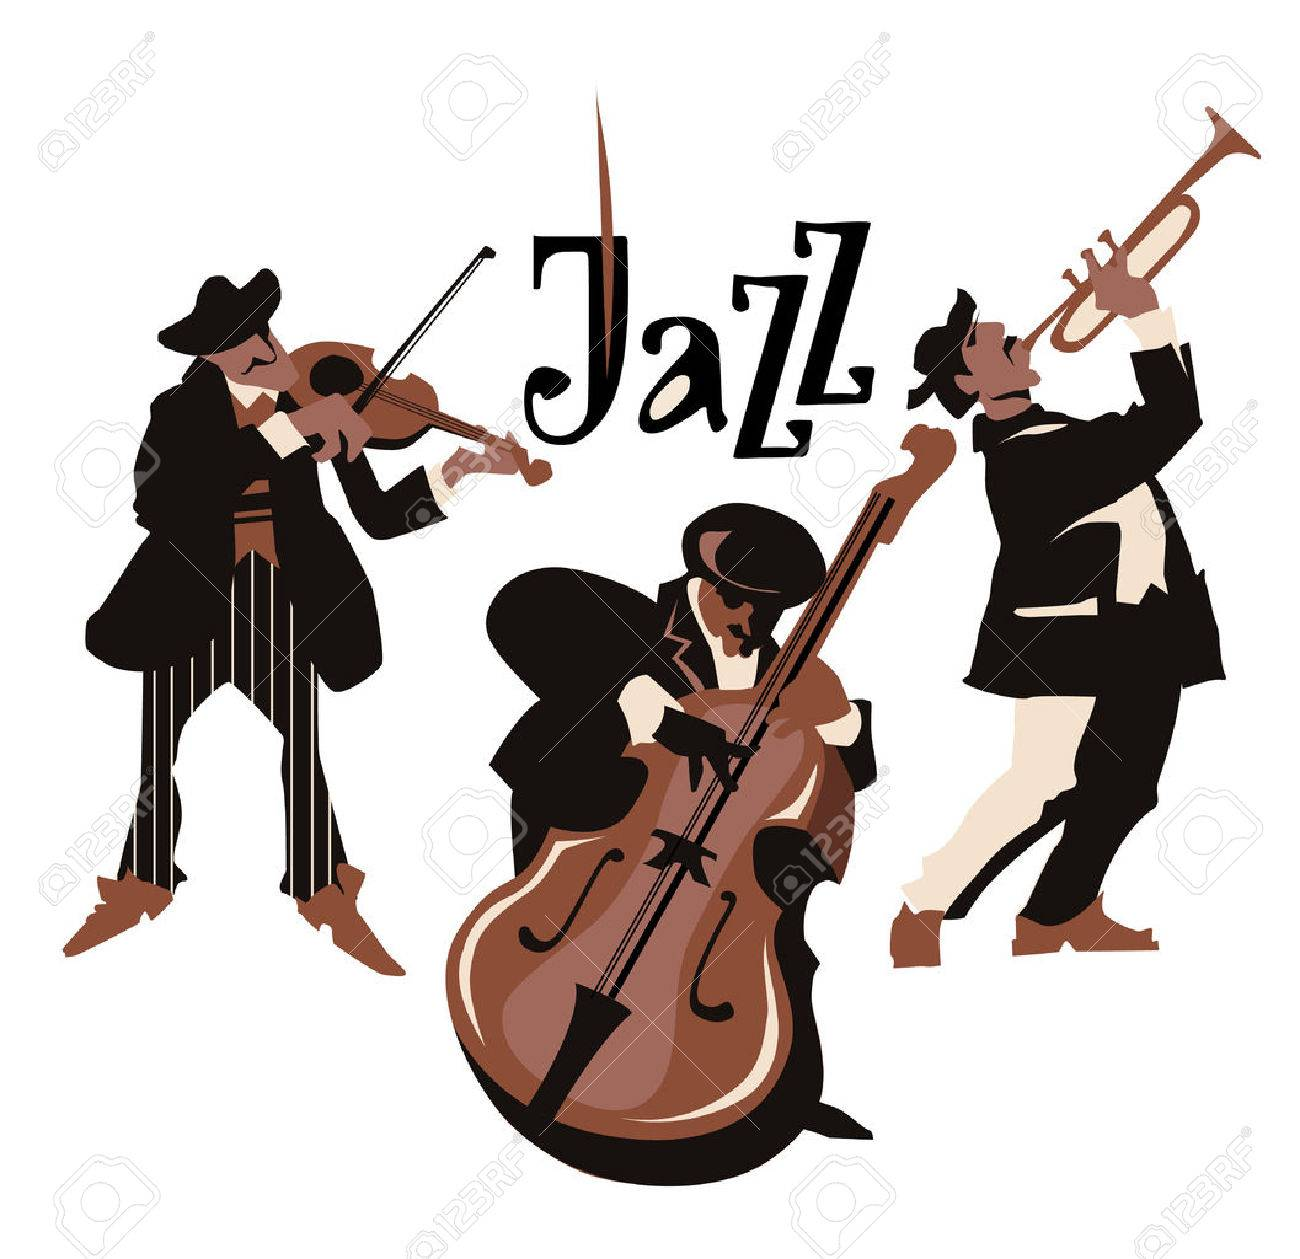 Musicans figures. Use for jazz festival poster, jass club, live music cafe and web design. Isolated flat vectors. Easy editable elements. Isolated on white background. Trumpet, violin, contrabass. - 50178383